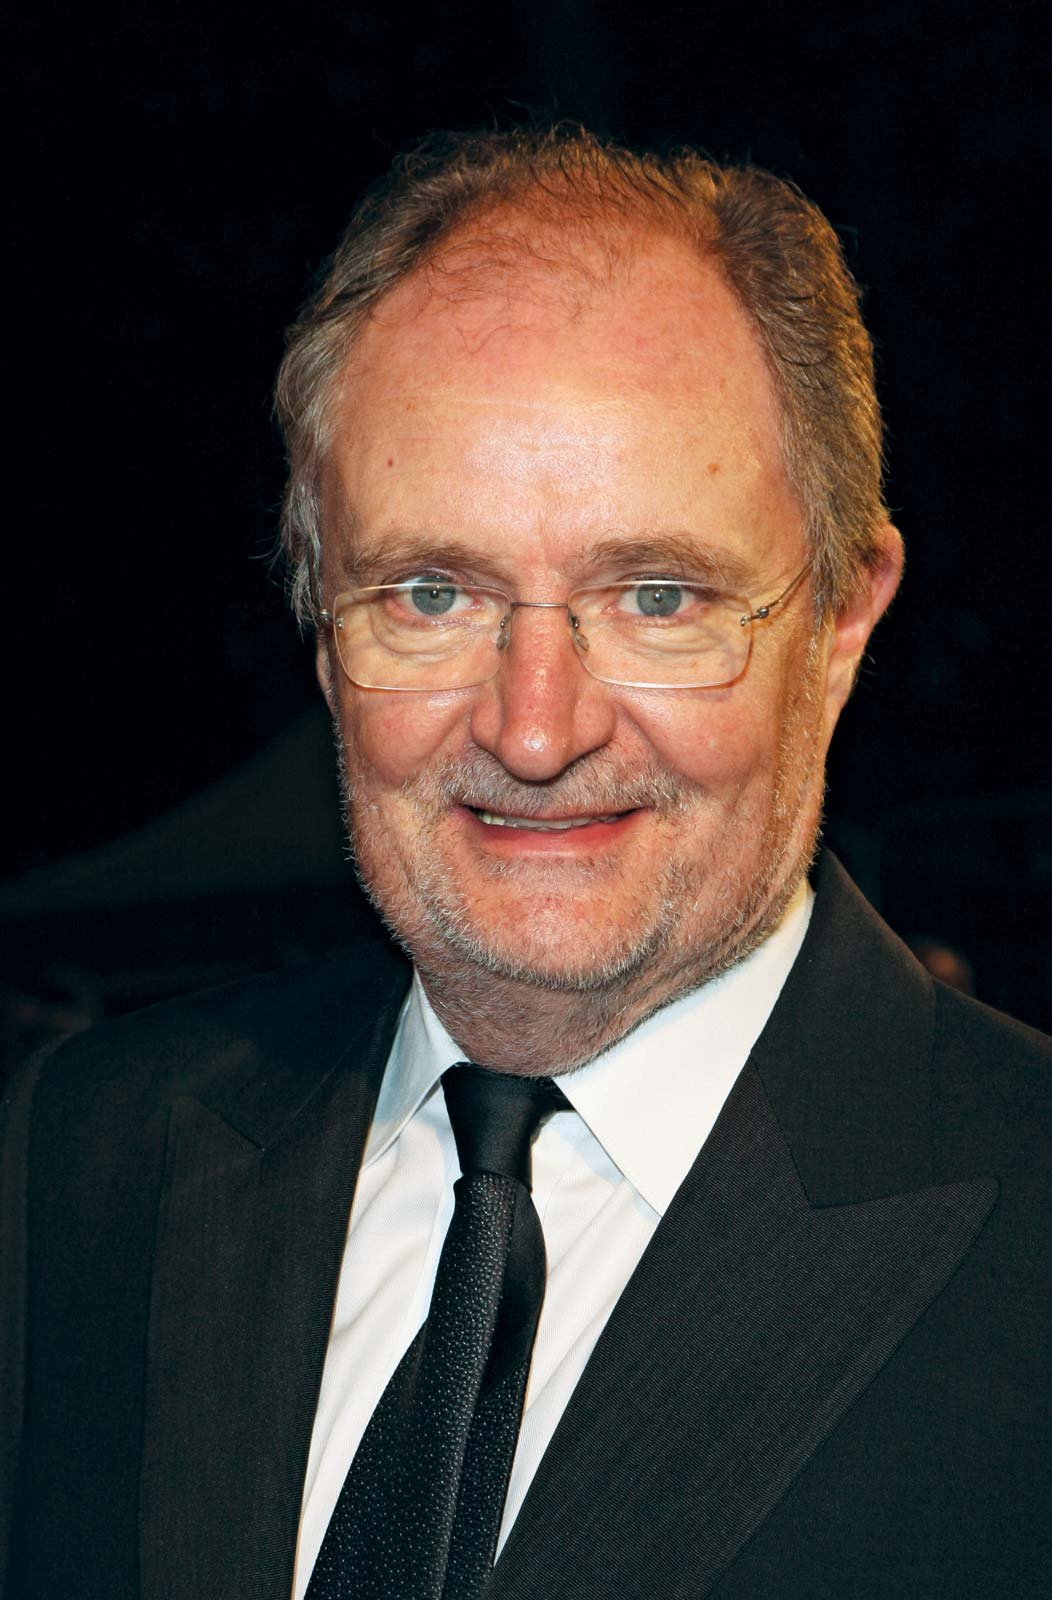 File:Jim Broadbent 2.jpg